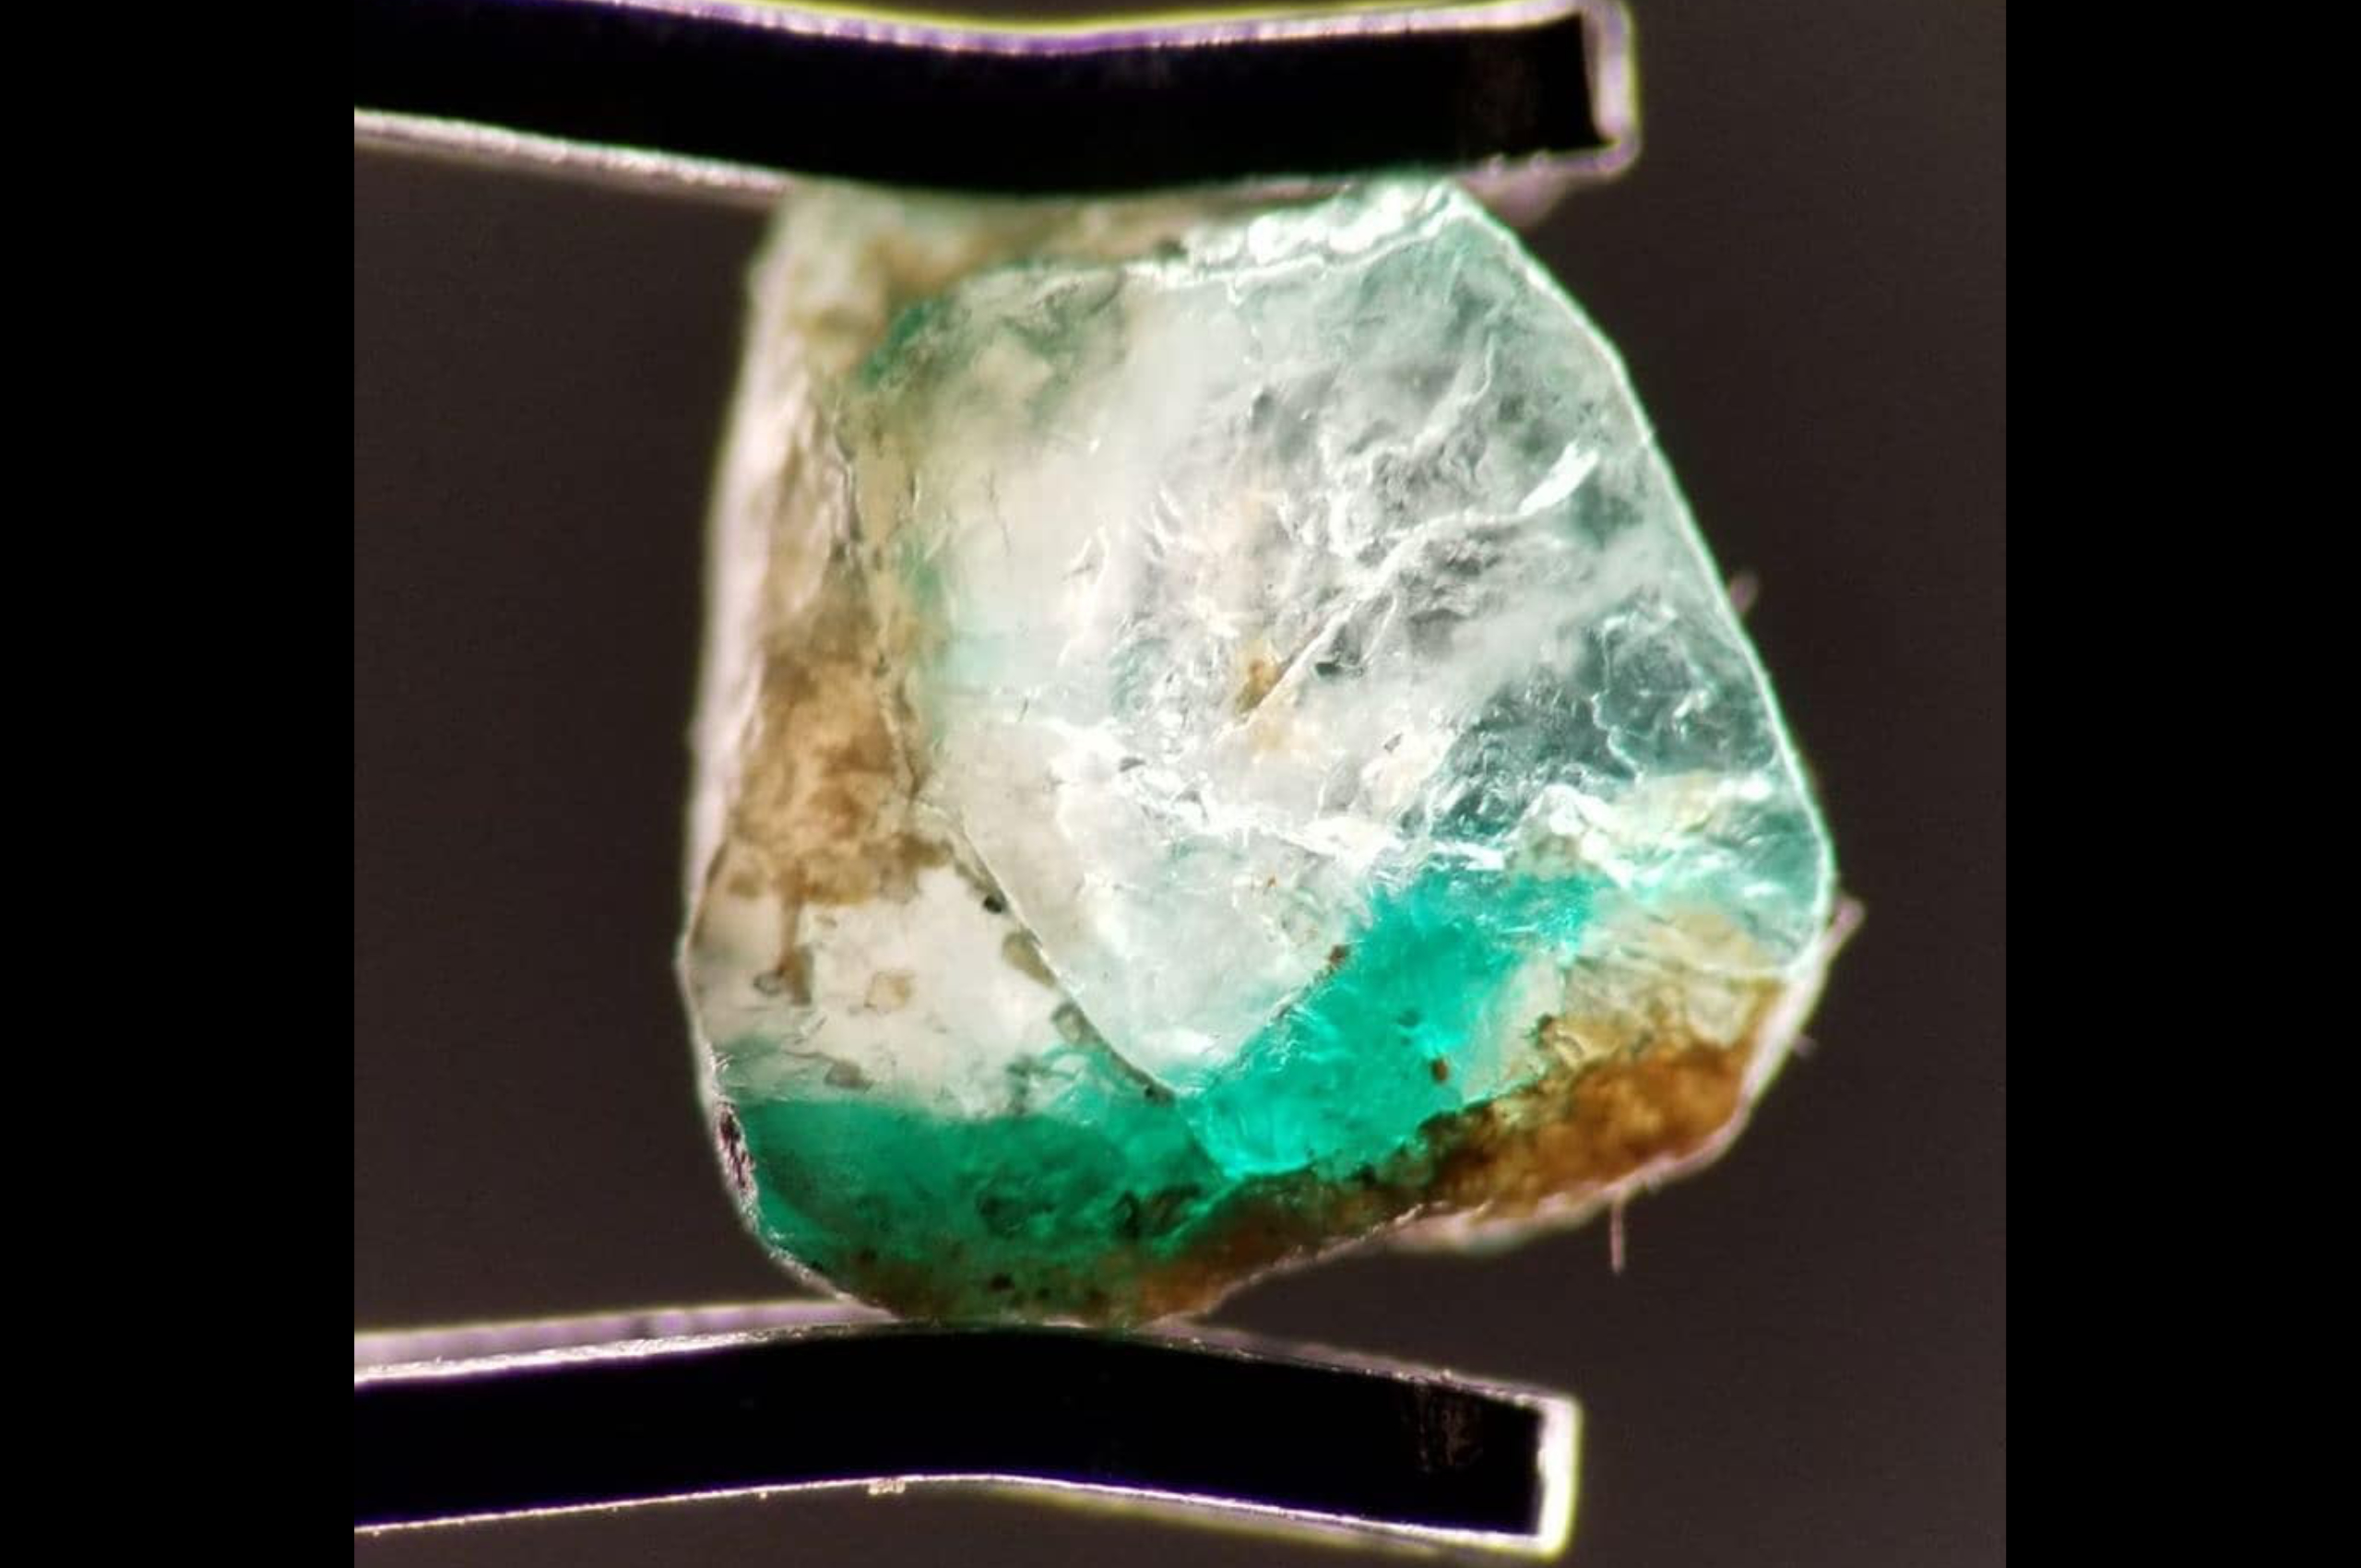 Inclusions, color zoning and perhaps old oil in rough emerald from Swat, Pakistan. Photo by Fahad Abbas Sheikh